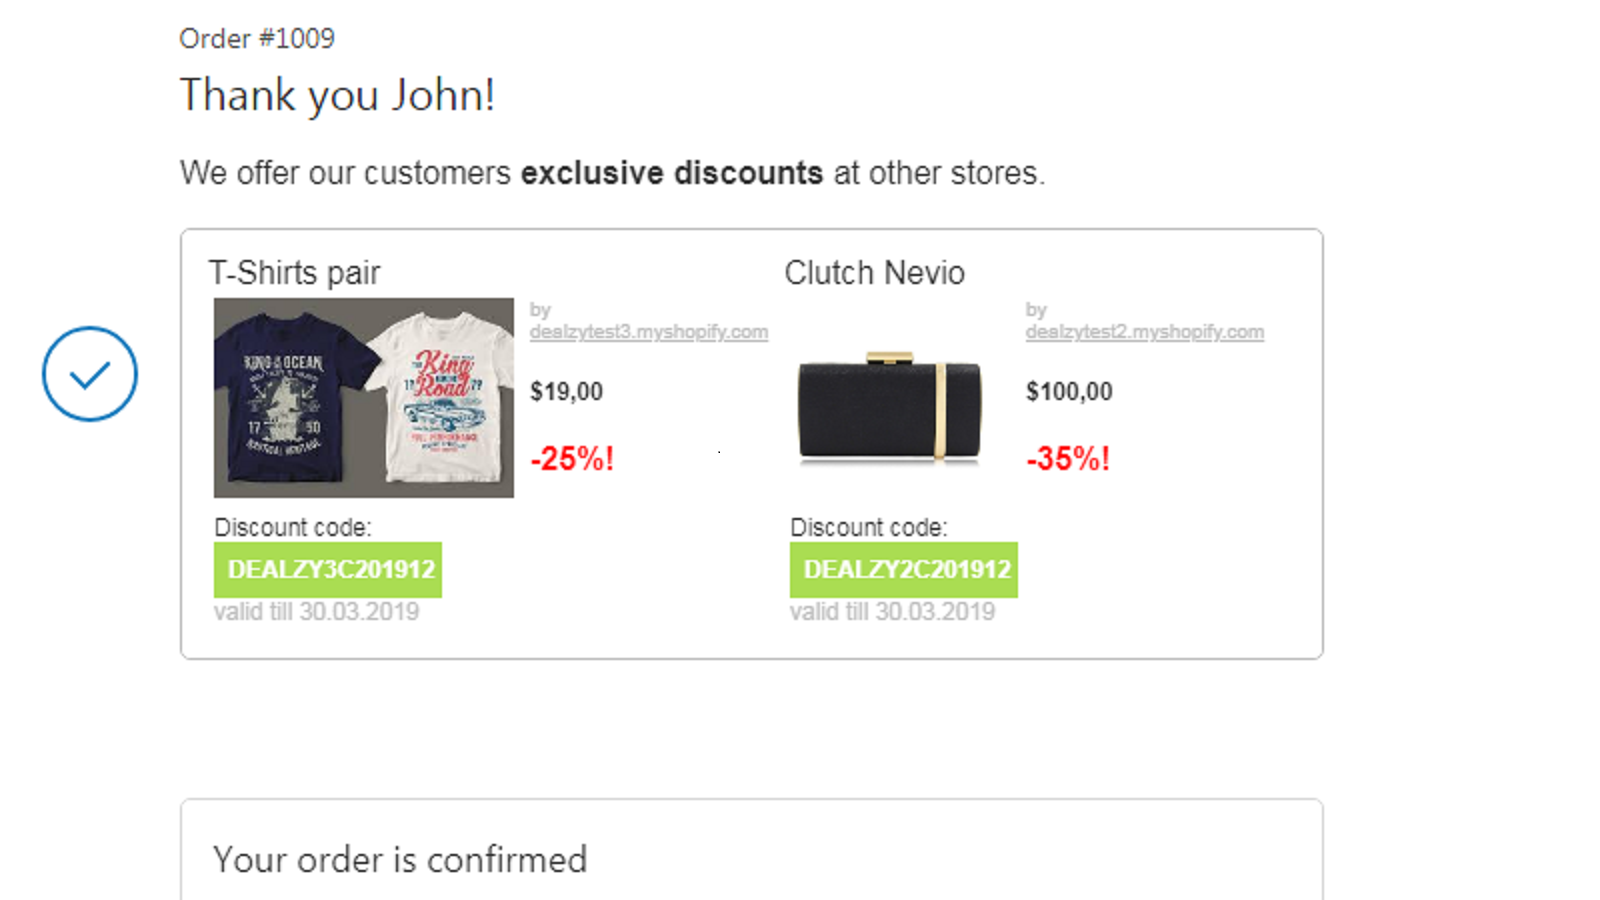 Complementary offers displayed after checkout